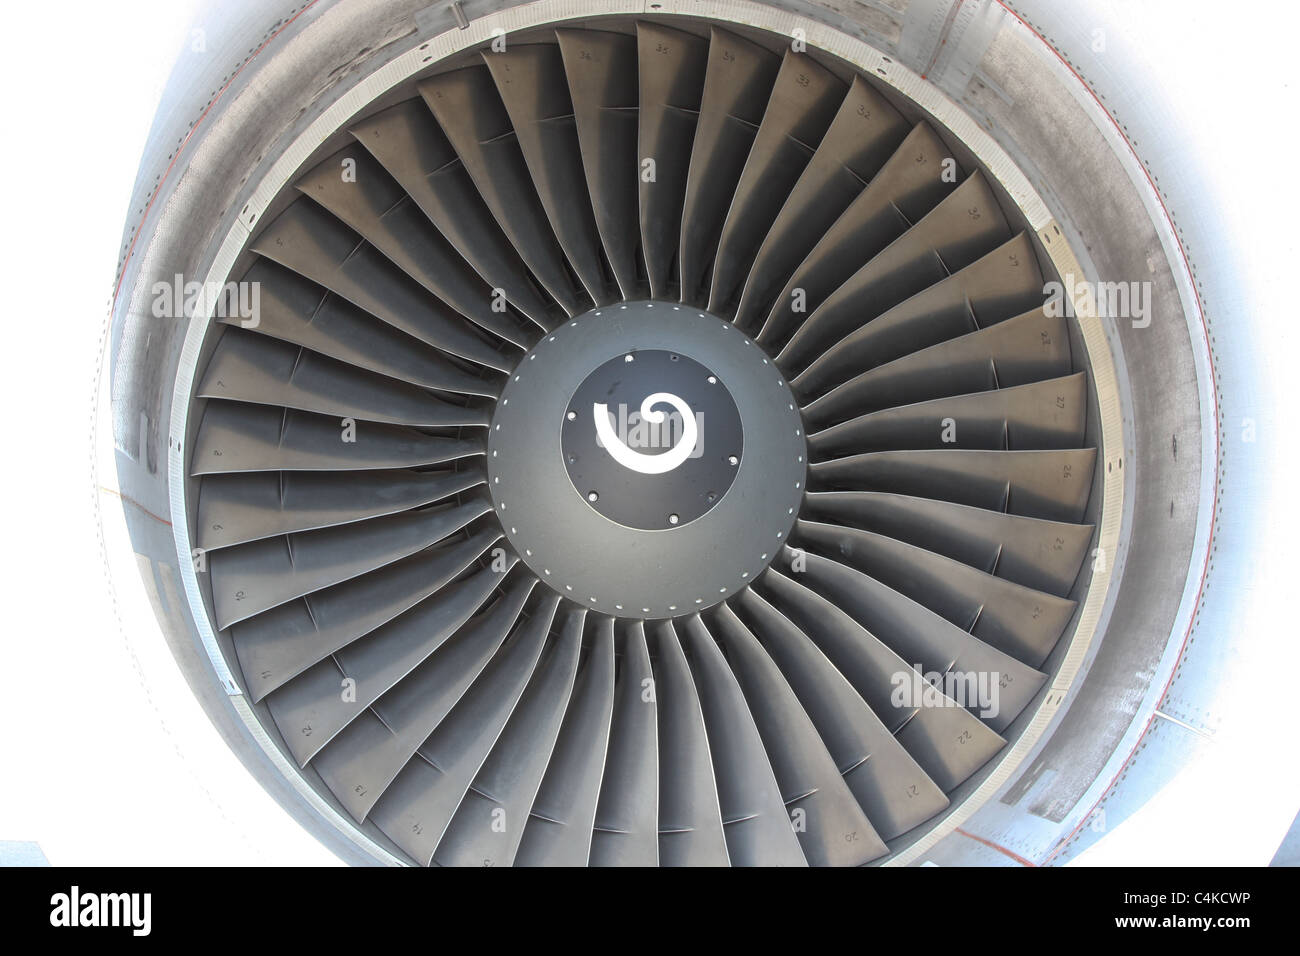 aircraft airplane turbine jet engine closeup - Stock Image